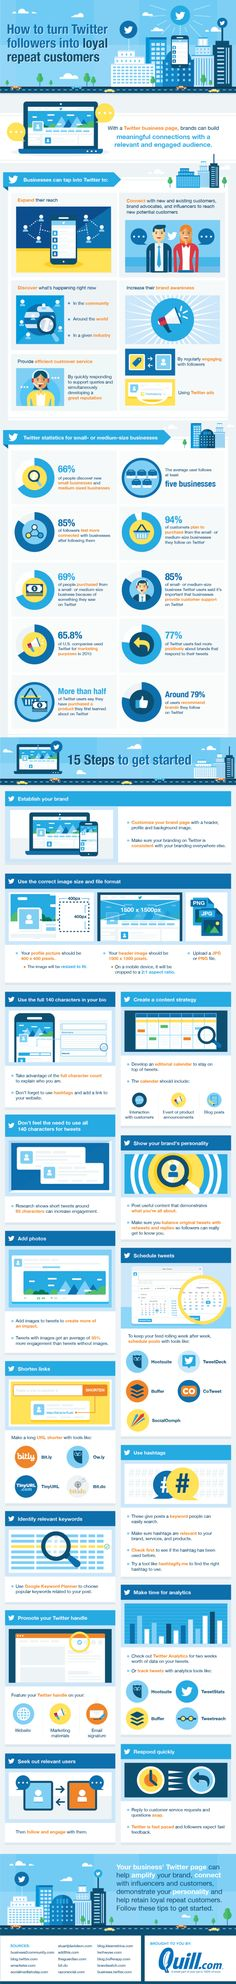 Twitter Tips for Business: Twitter's a great way to build meaningful connections with your audience. Improve your social media marketing with the tips on this helpful infographic!